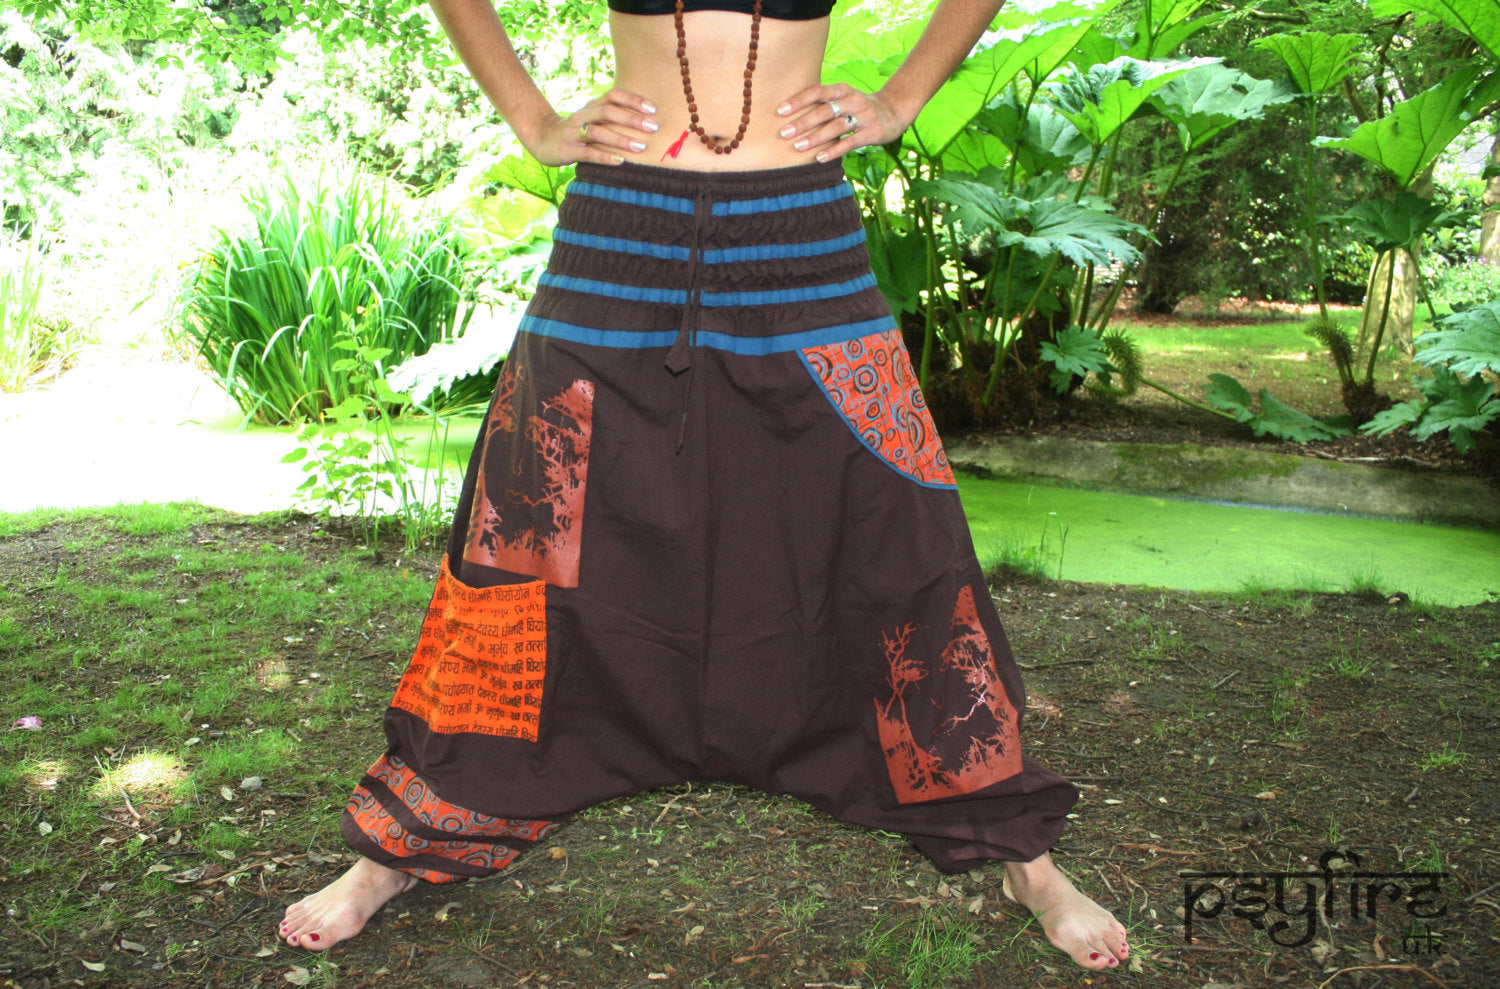 BROWN Harem Pants - Unisex Ali Baba Trousers, Hippie Yoga Pants, Fisherman Pants, Boho Baggy Trousers, Psytrance Pants, Aladdin Trousers Psy